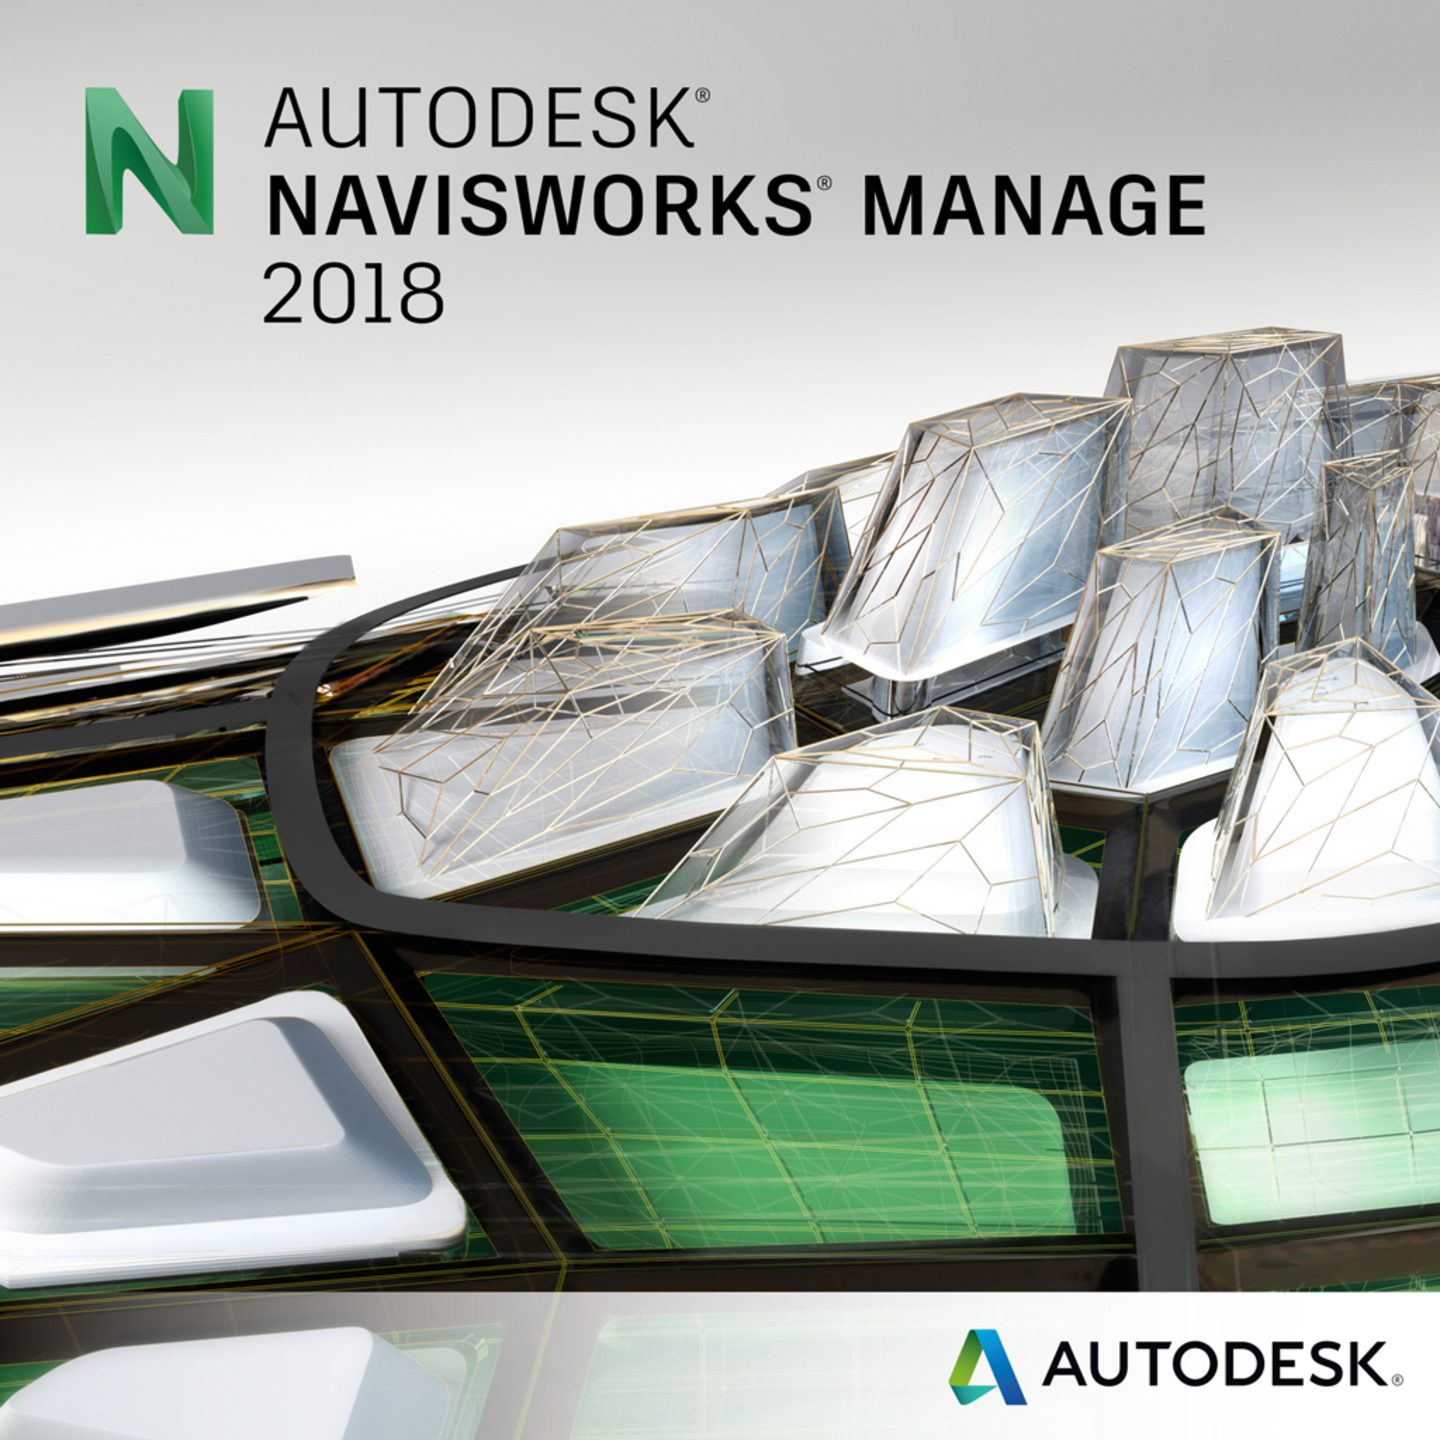 AUTODESK NAVISWORKS MANAGE TRAINING